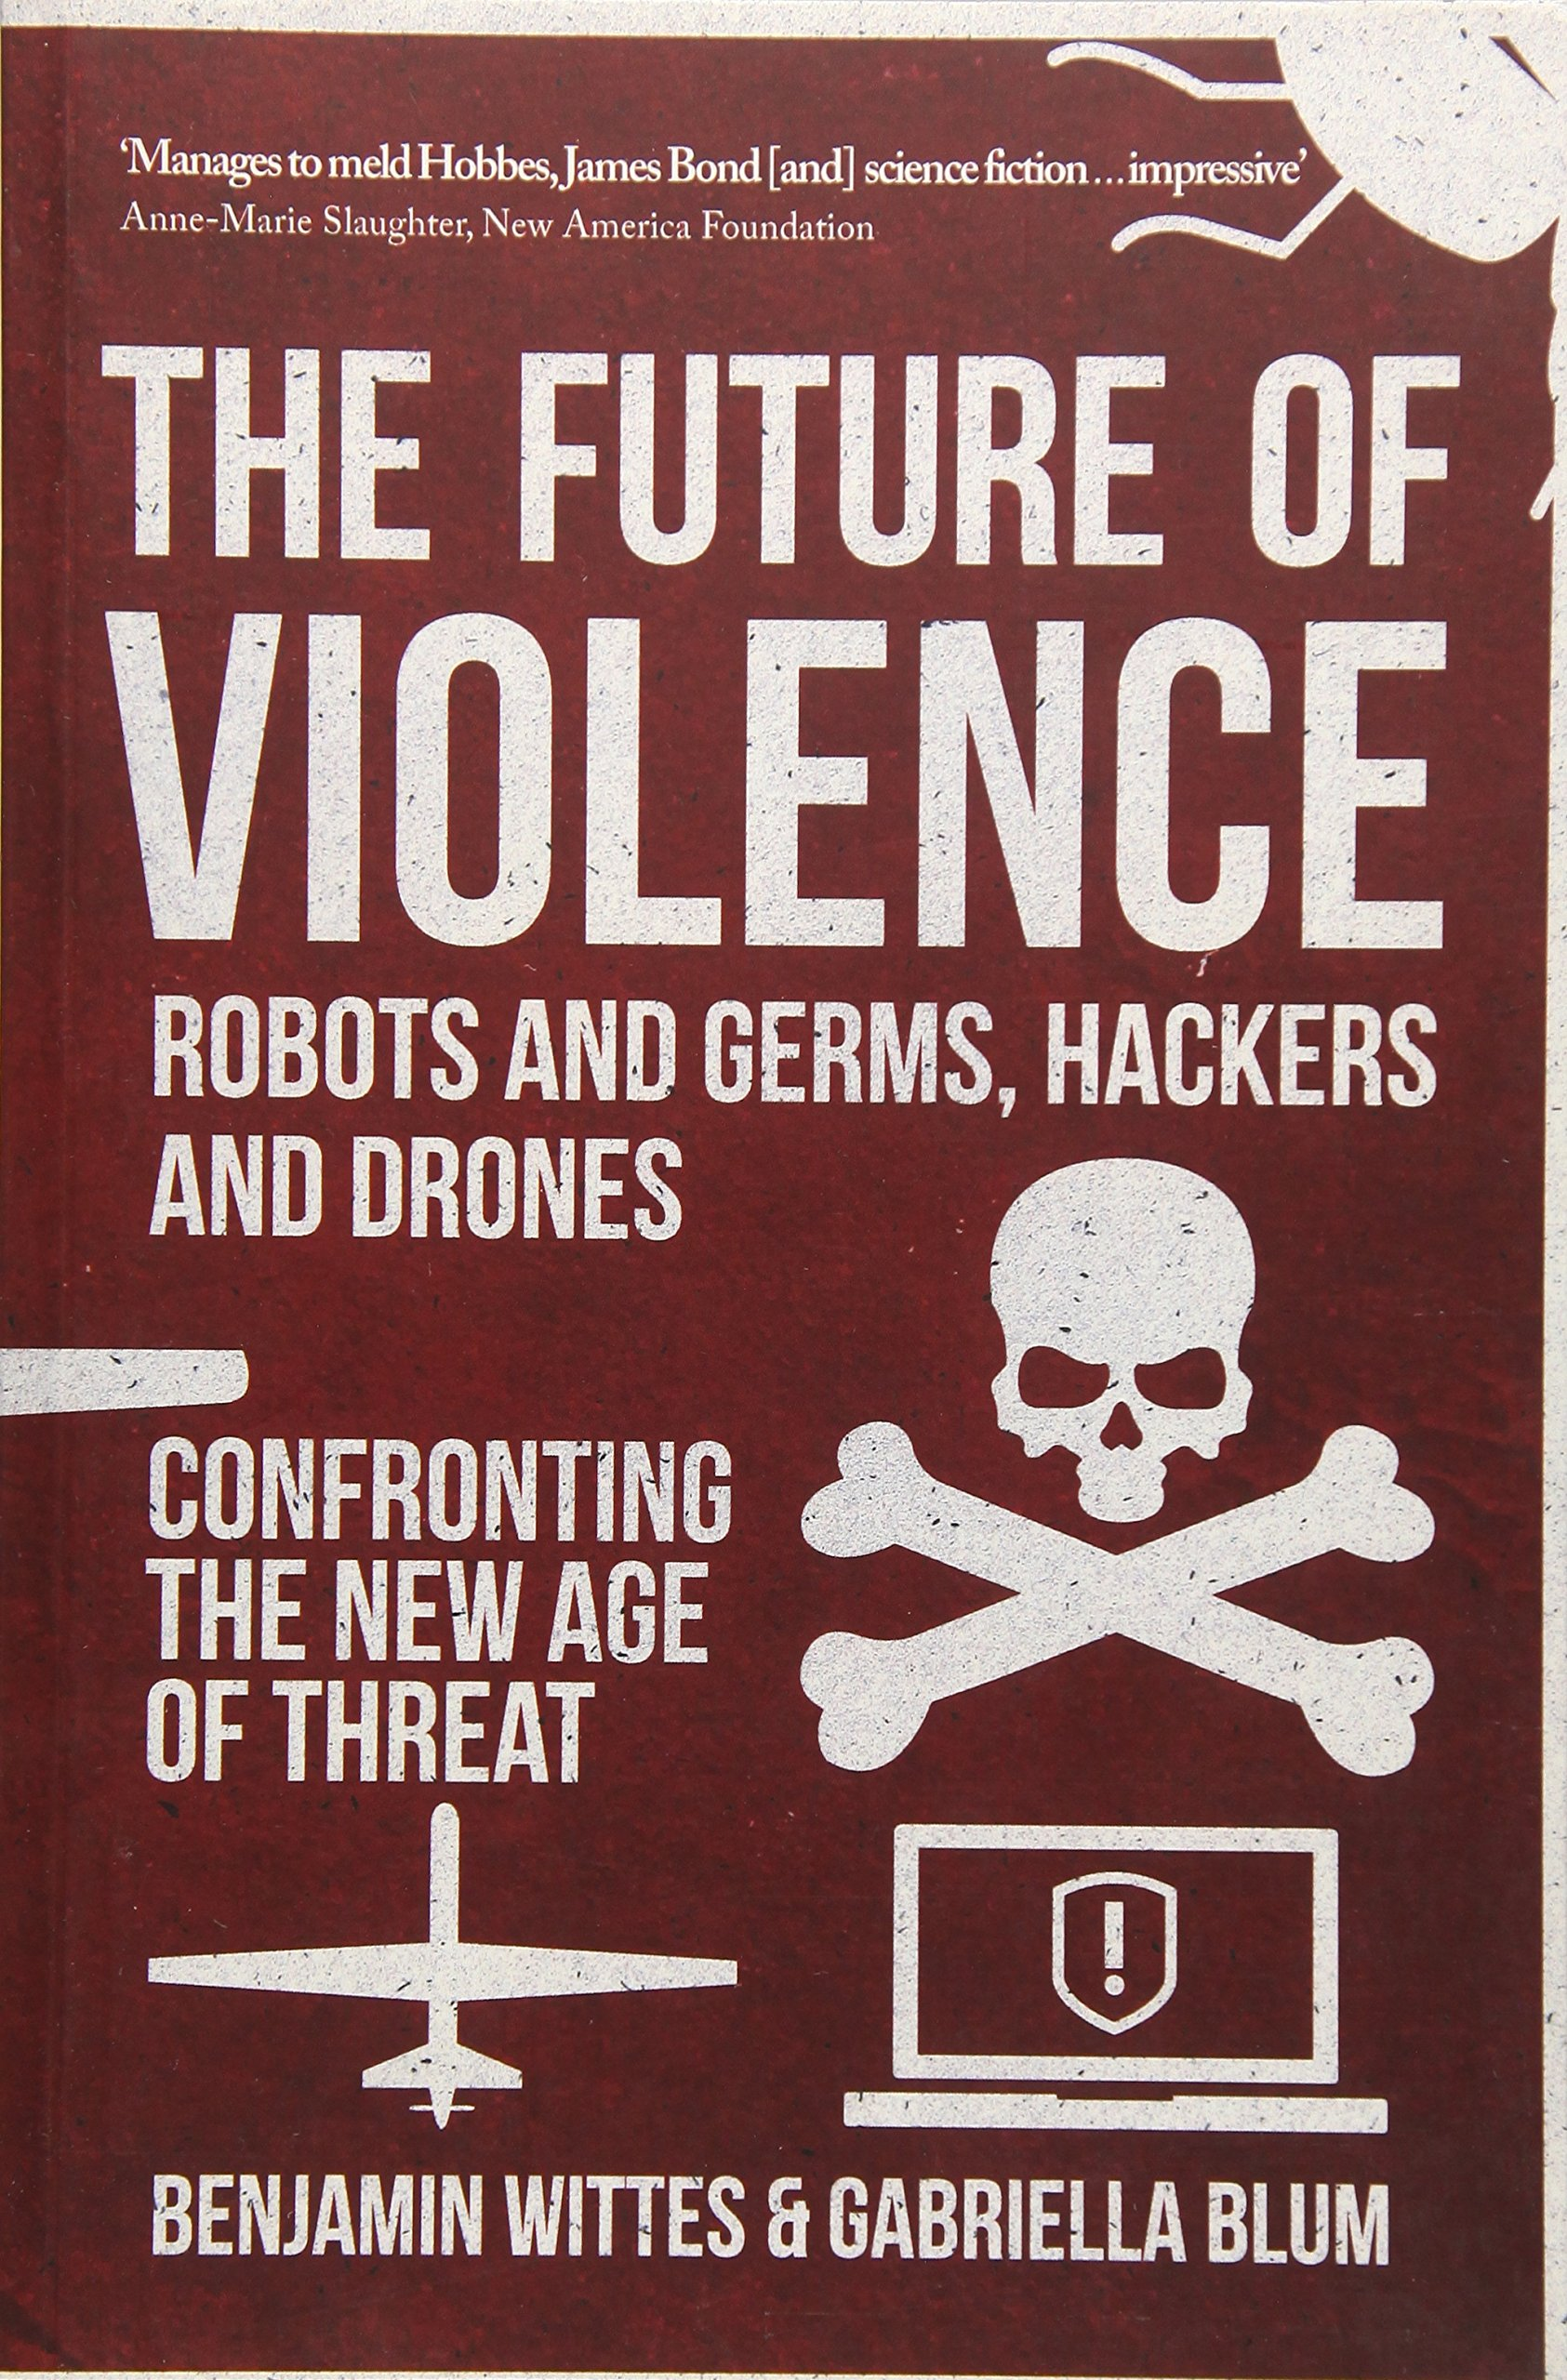 Download The Future of Violence - Robots and Germs, Hackers and Drones: Confronting the New Age of Threat PDF